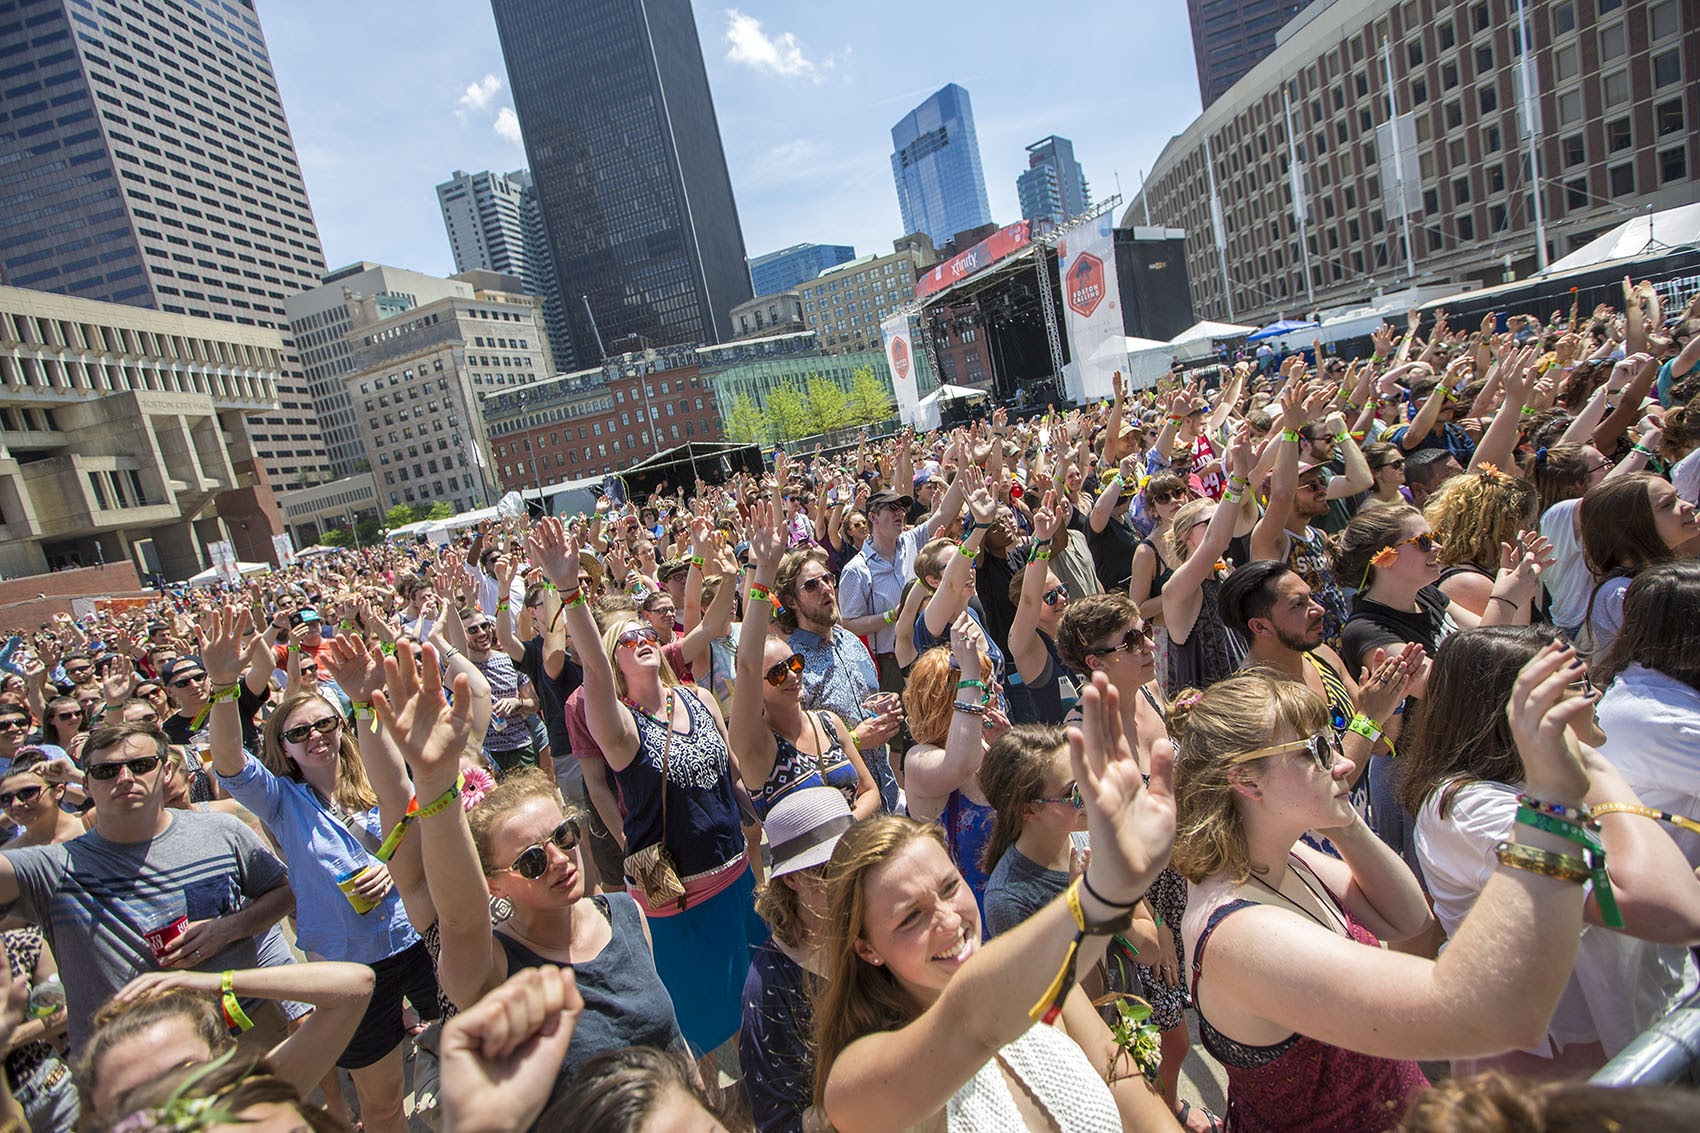 Fans cheer during Saturday afternoon concerts at Boston Calling in City Hall Plaza last May. This year, the festival is moving to greener pastures in Allston. (Jesse Costa/WBUR)